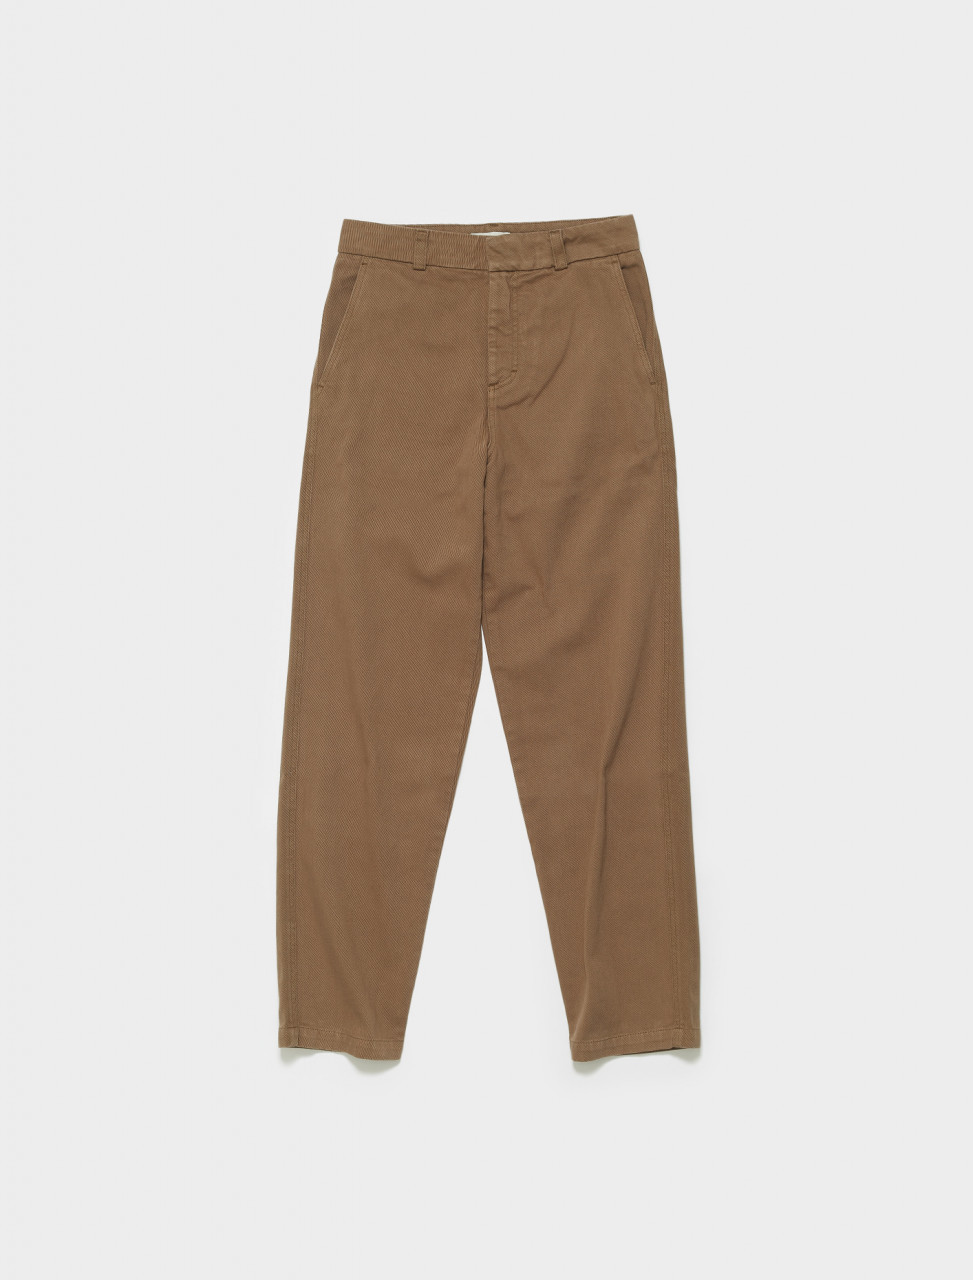 808080-800 ANOTHER ASPECT ANOTHER PANTS 2.0 TEAK